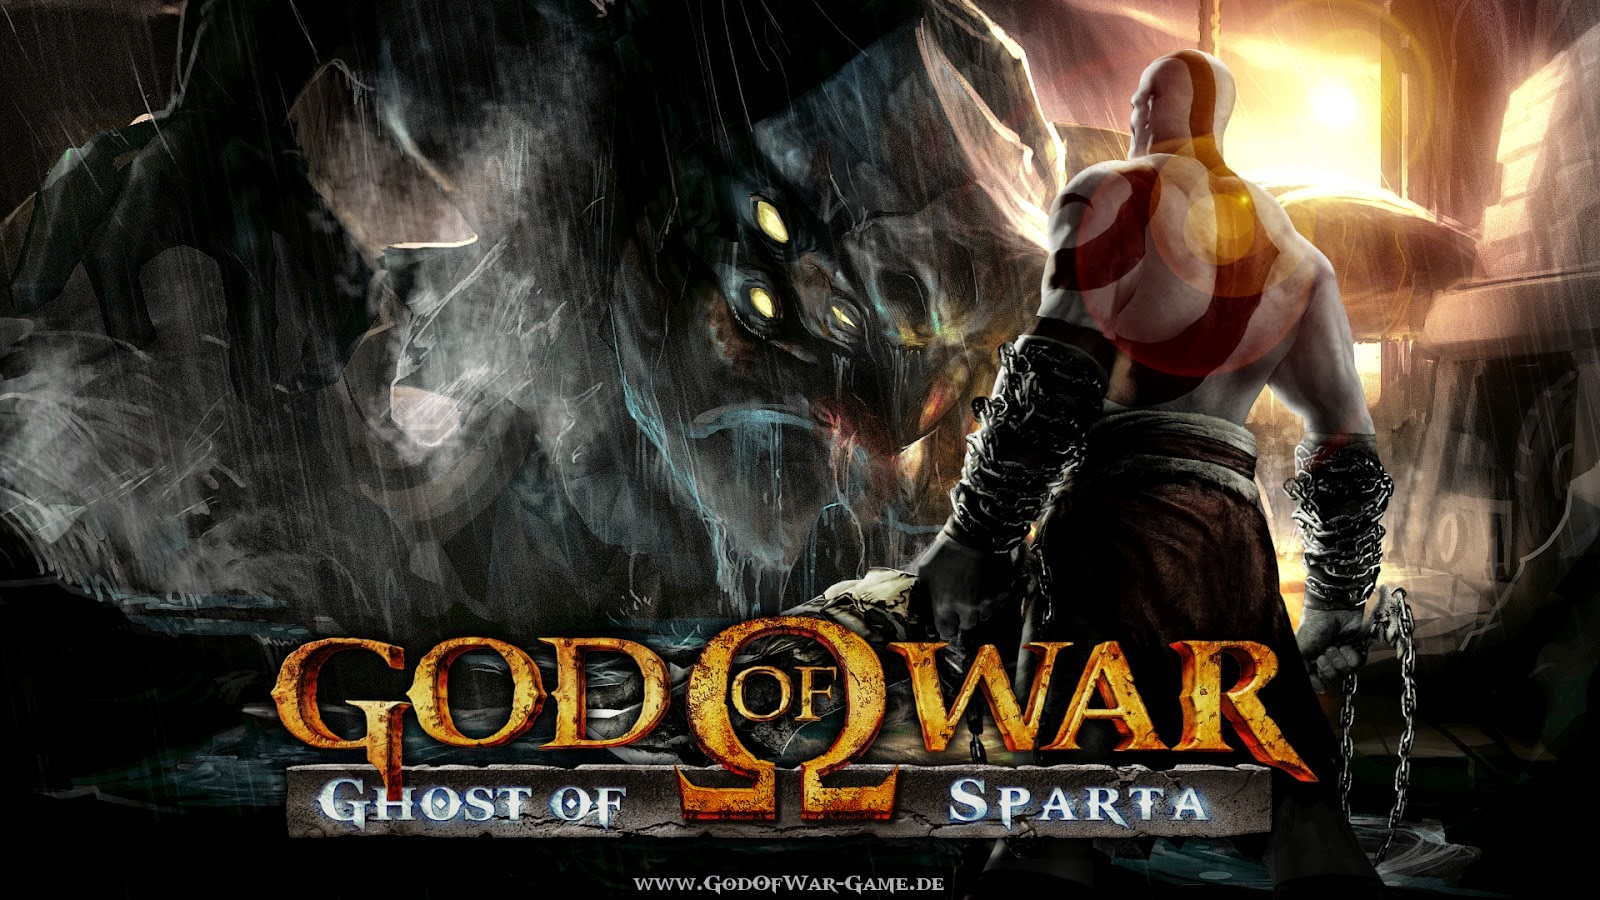 Free Download God Of War: Ghost of Sparta [PPSSPP+PSP] Game (.iso)